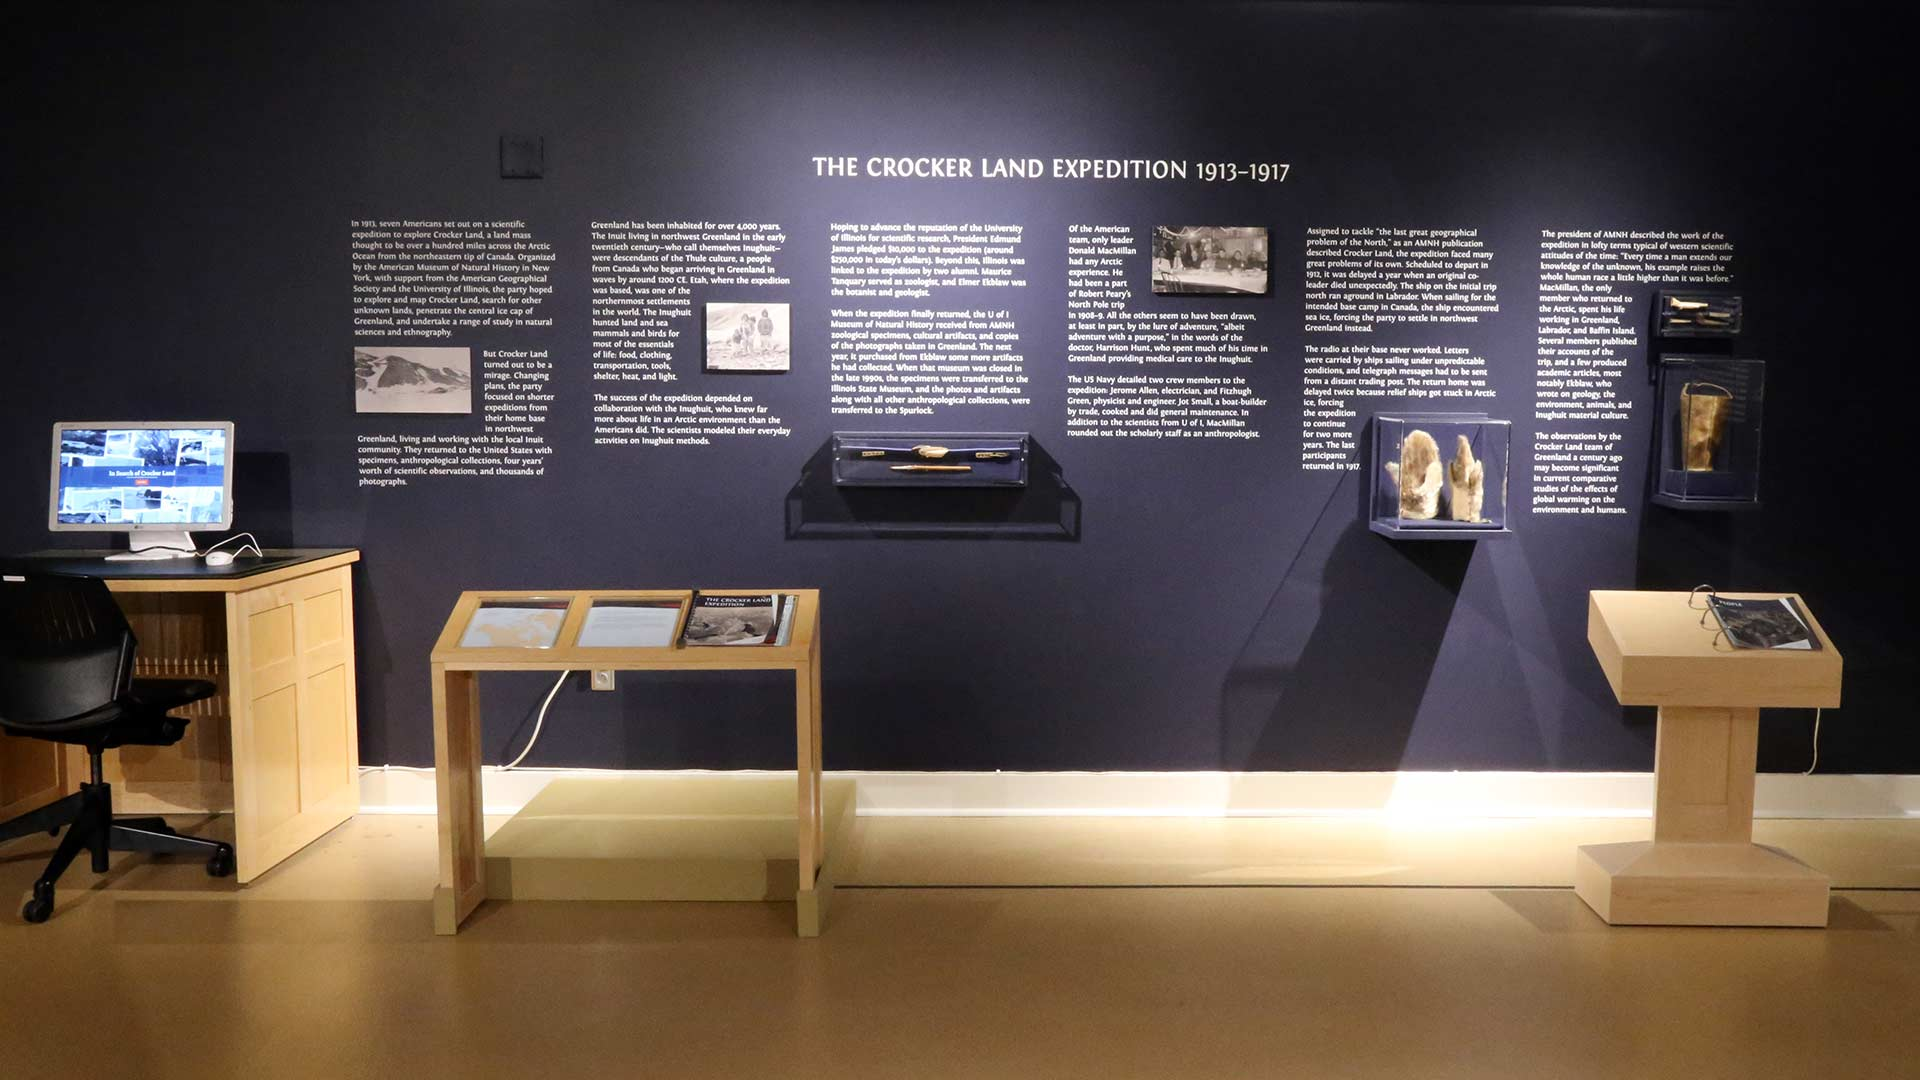 artifacts and photos on the wall aligned with text introduces crocker land expedition